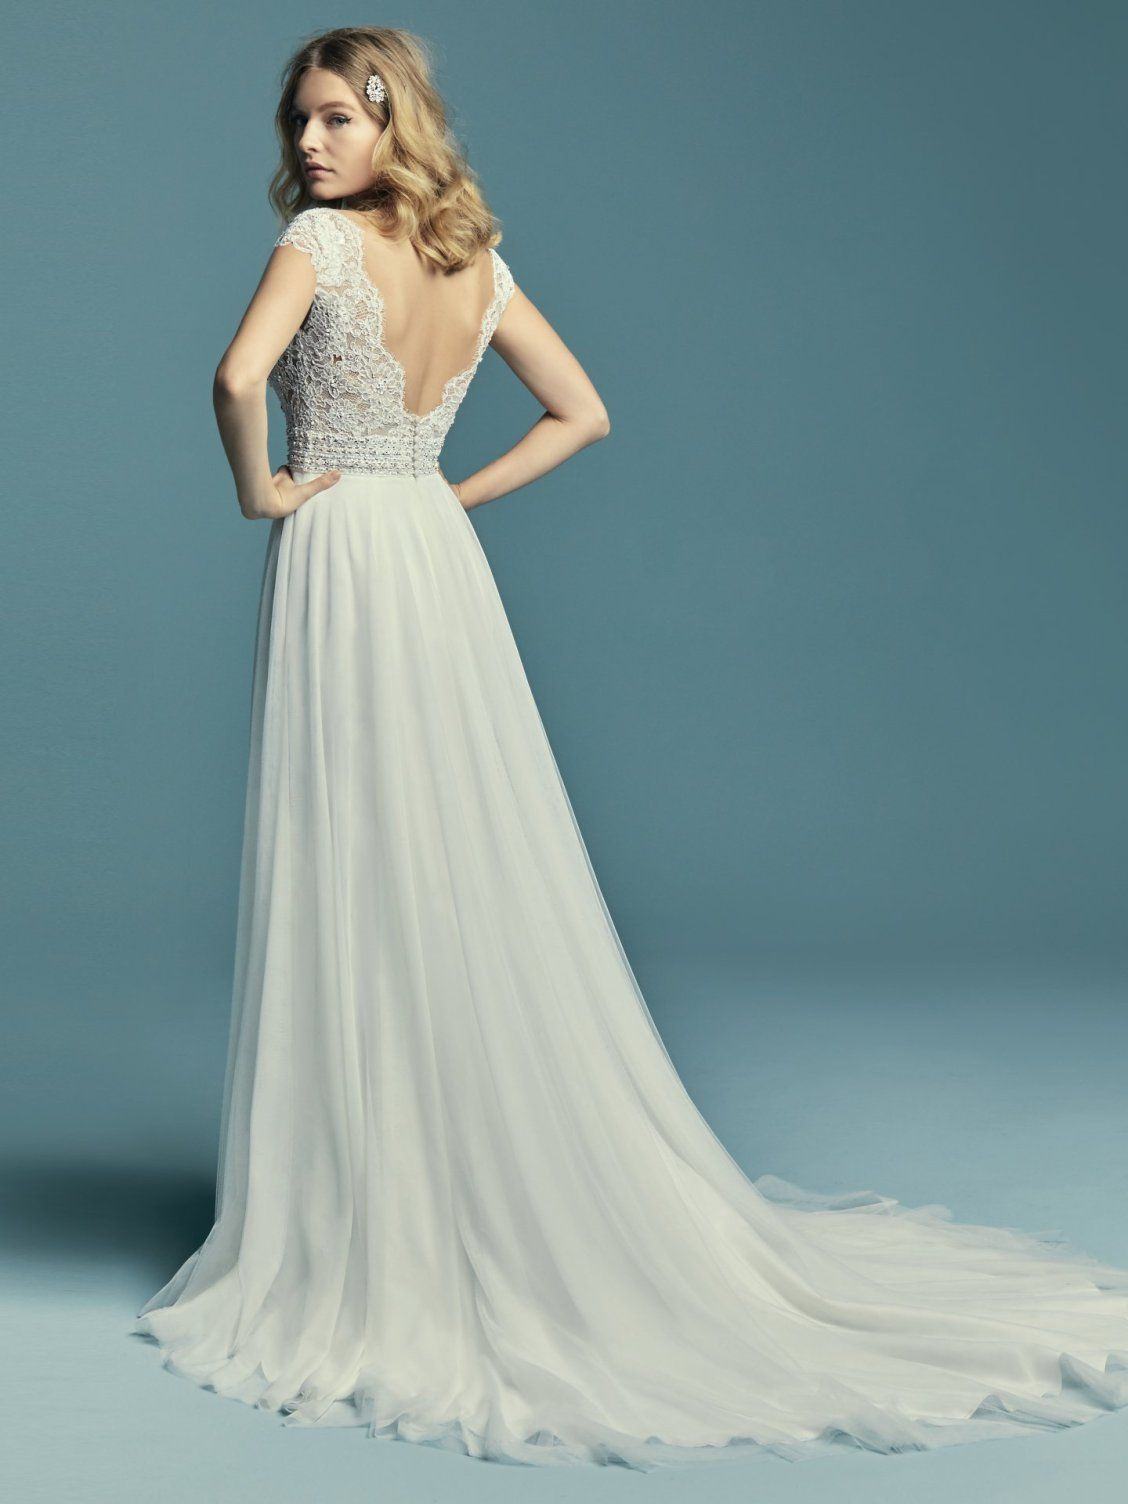 b25f7a1dc2e1 Maggie Sottero - MONARCH, Delicate lace motifs accent the bodice in this  boho wedding dress